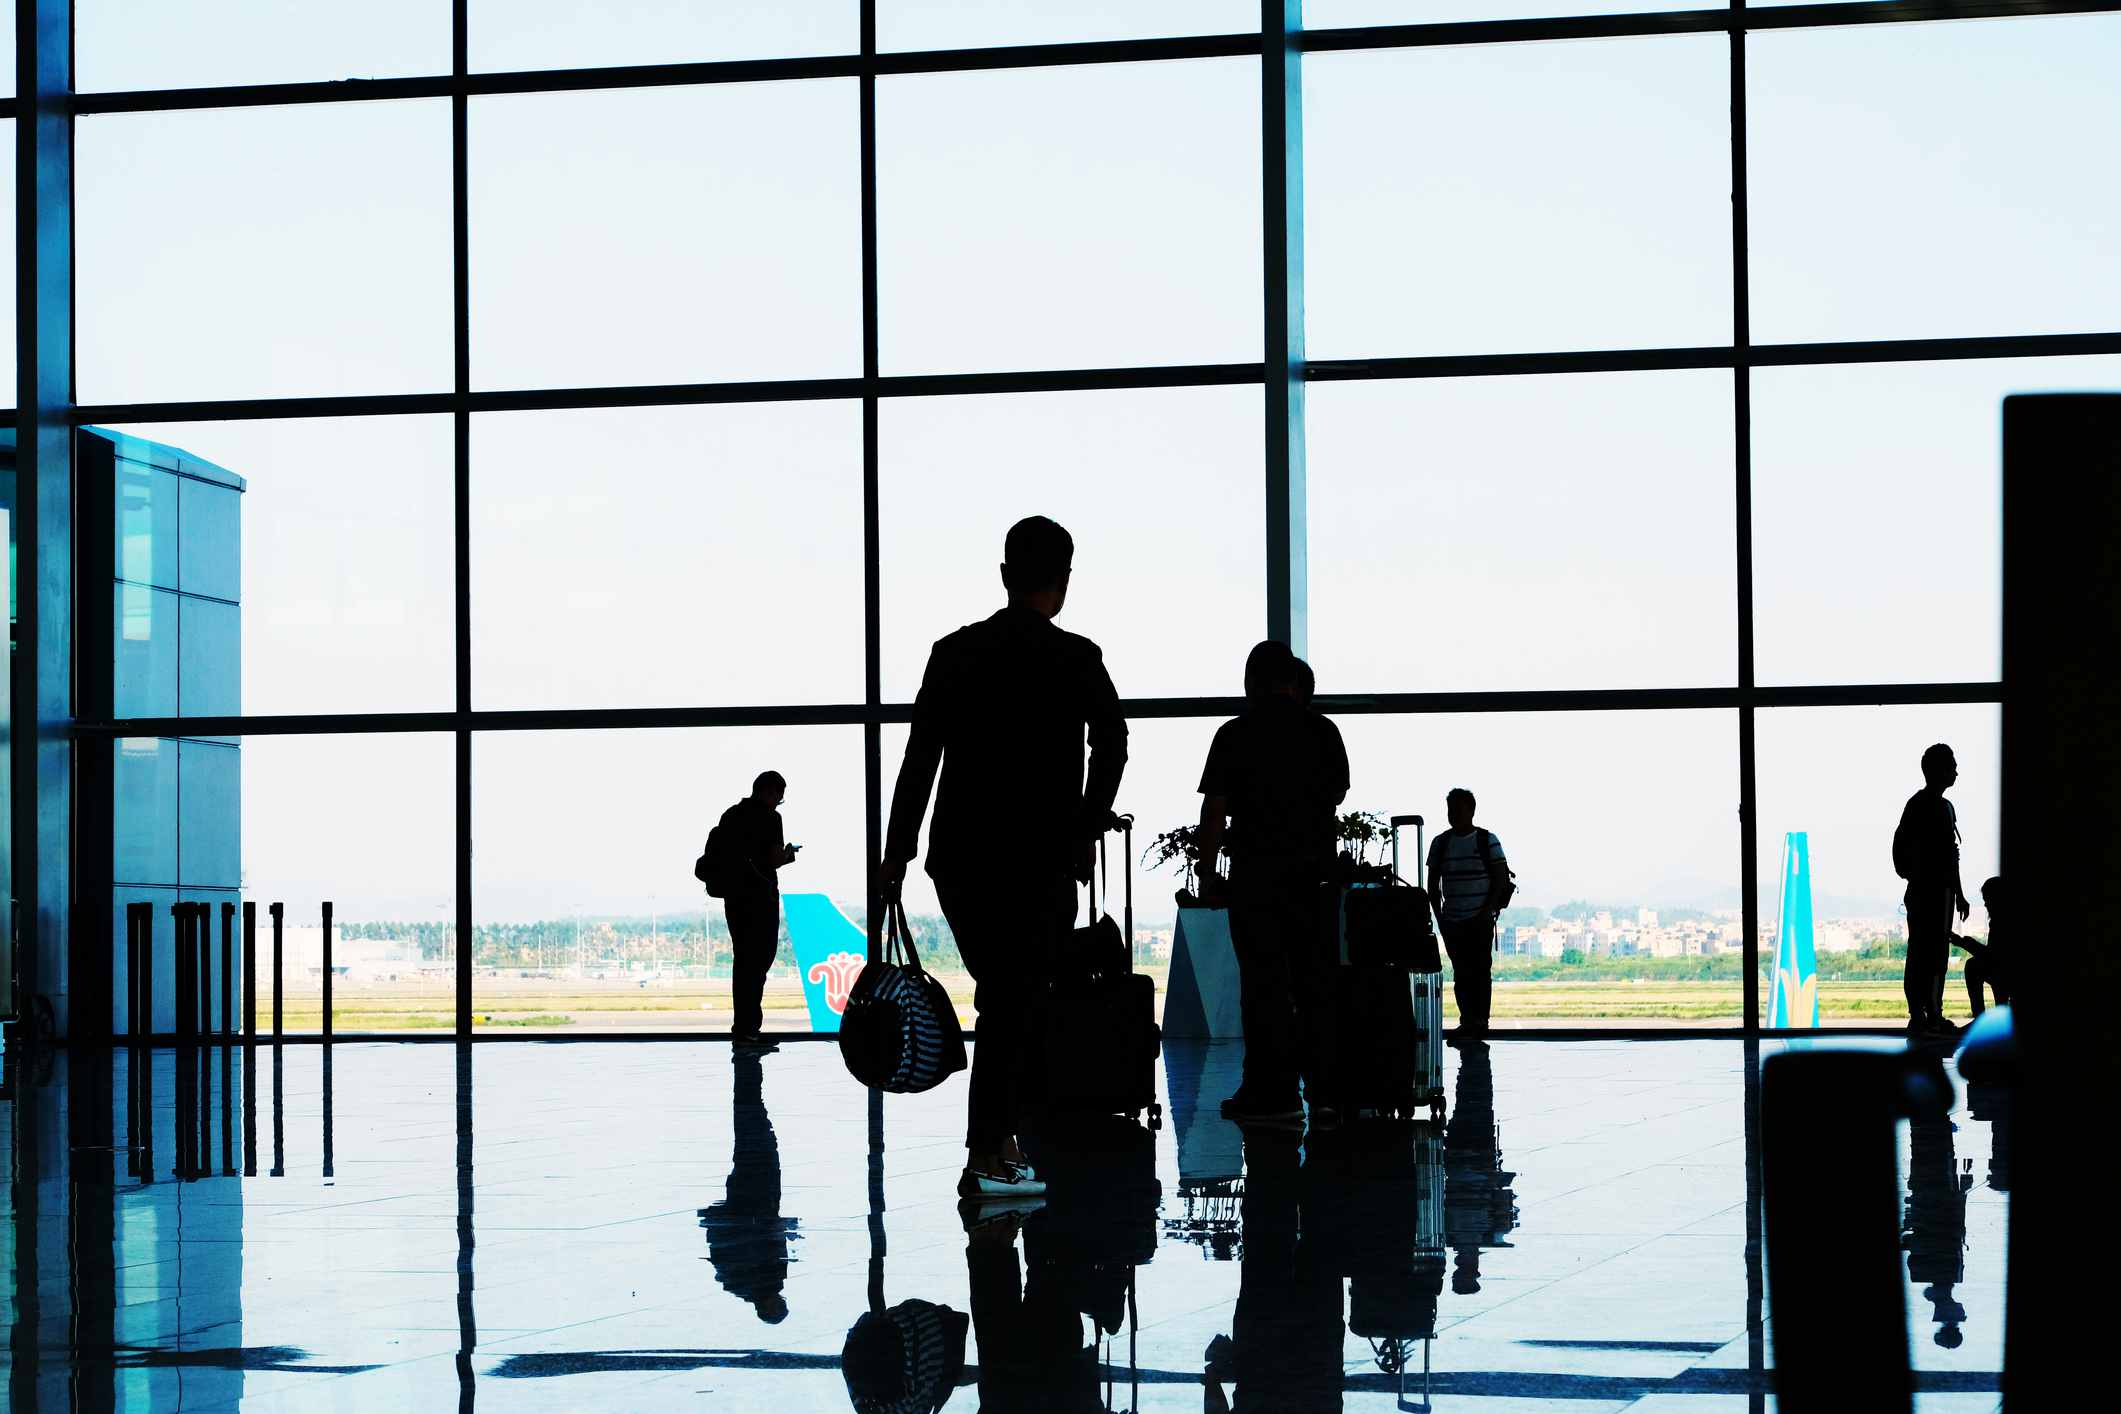 Silhouettes of people departing at the airport Indonesia